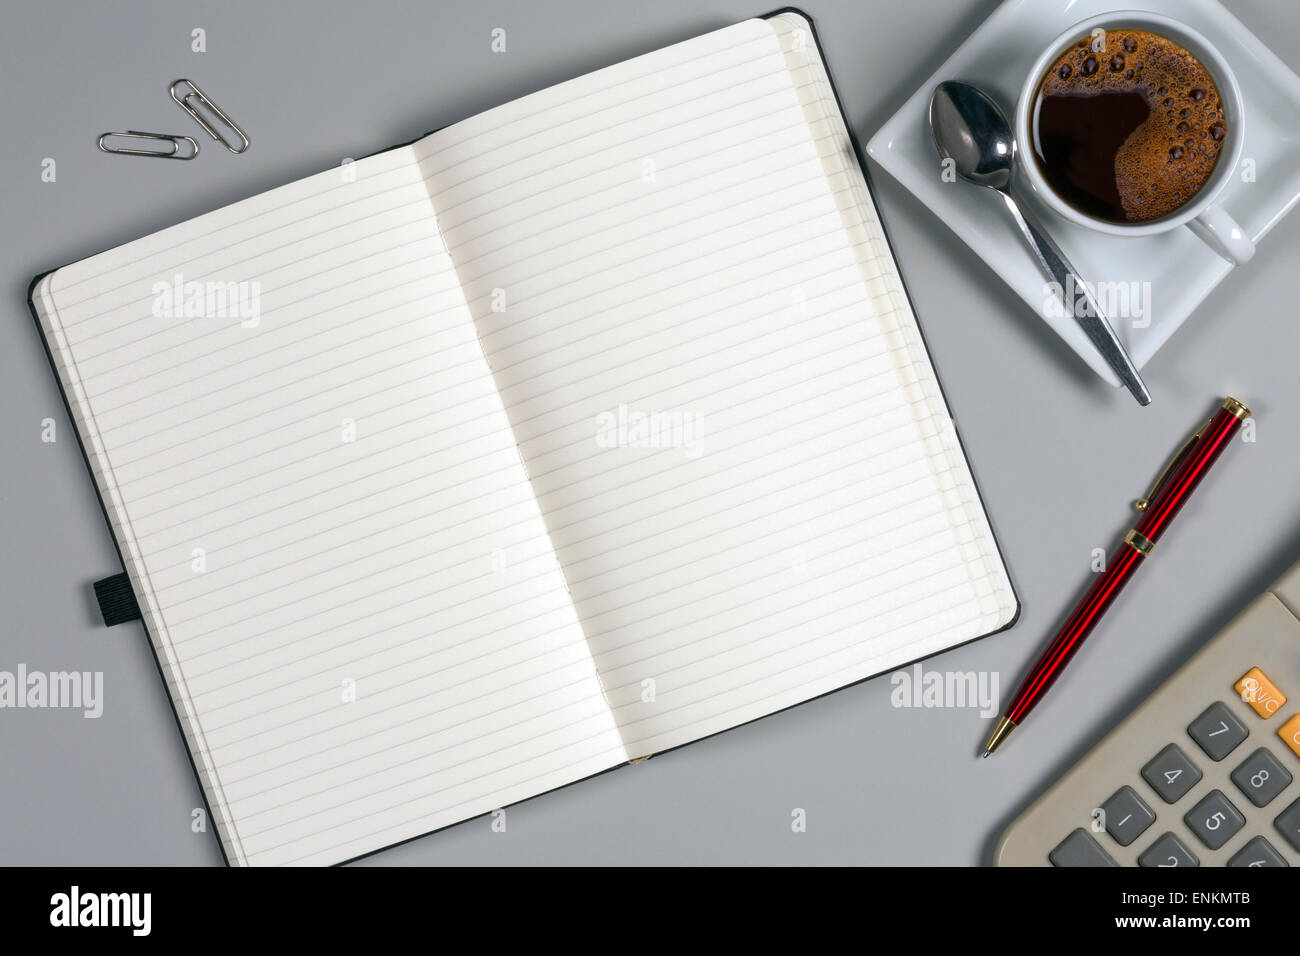 Take a memo - Notepad and coffee cup on an office worktop - Space for Text - Stock Image